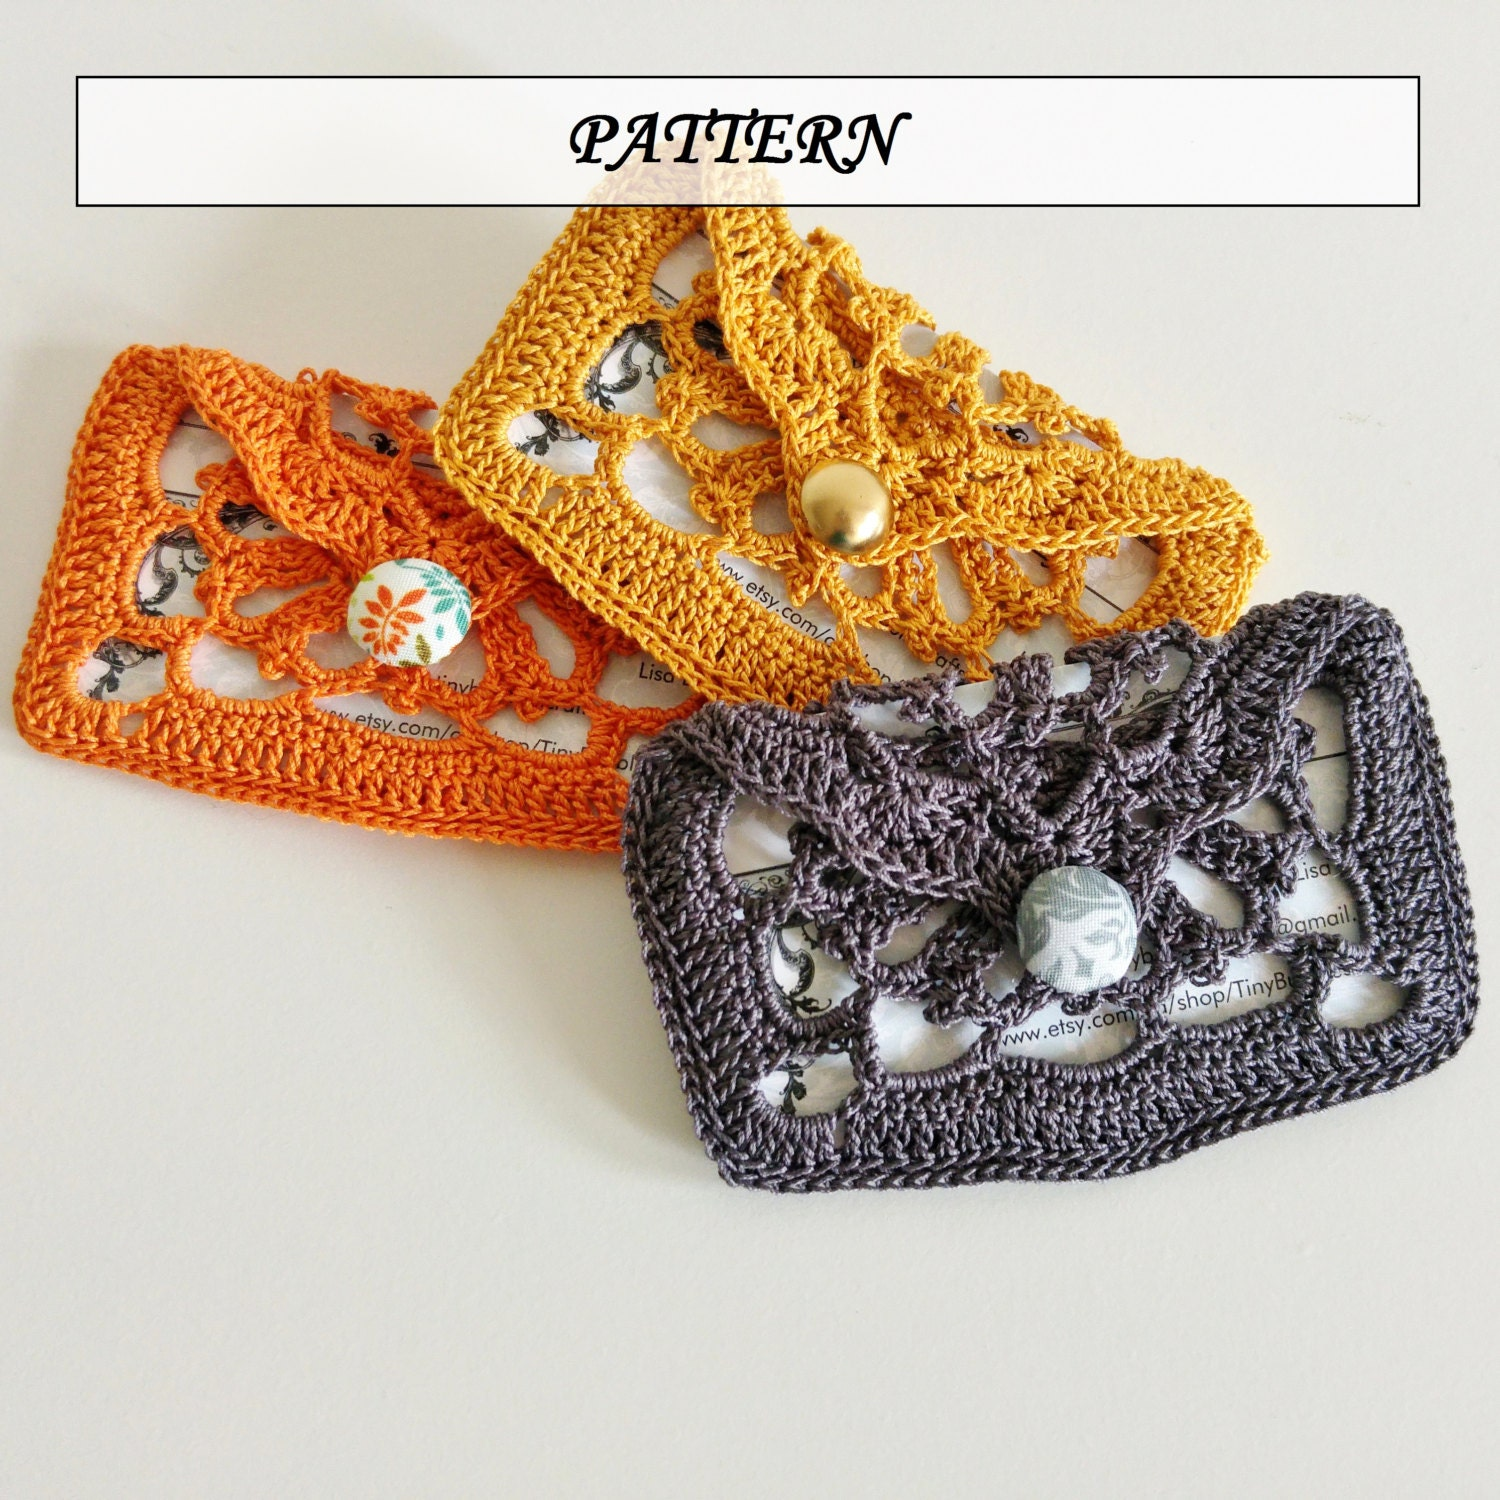 Crochet Pattern Lace Card Holder | Crochet Pattern | Crochet Pouch ...